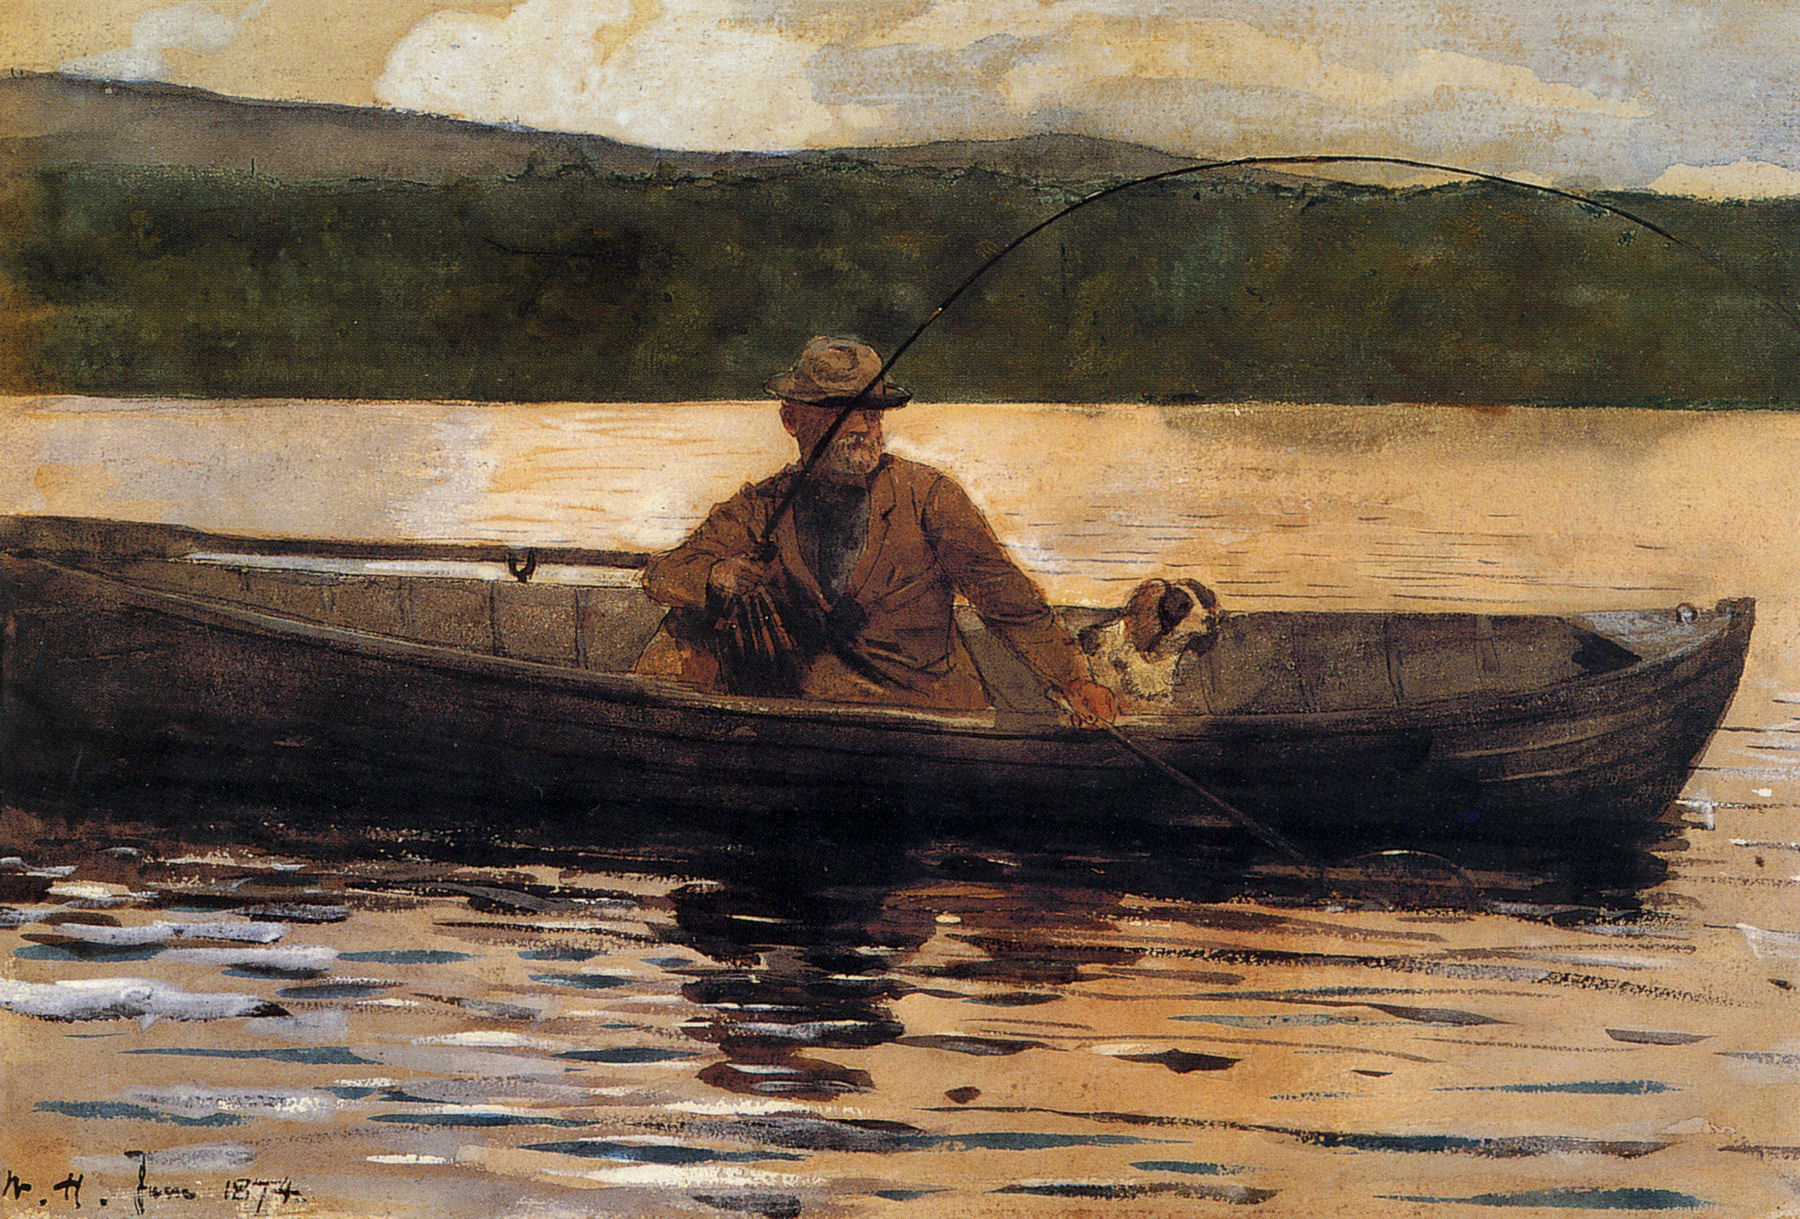 Omaž ribolovcu i ribolovu - Page 6 Winslow_Homer_-_The_painter_Eliphalet_Terry_fishing_from_a_boat_(1874)